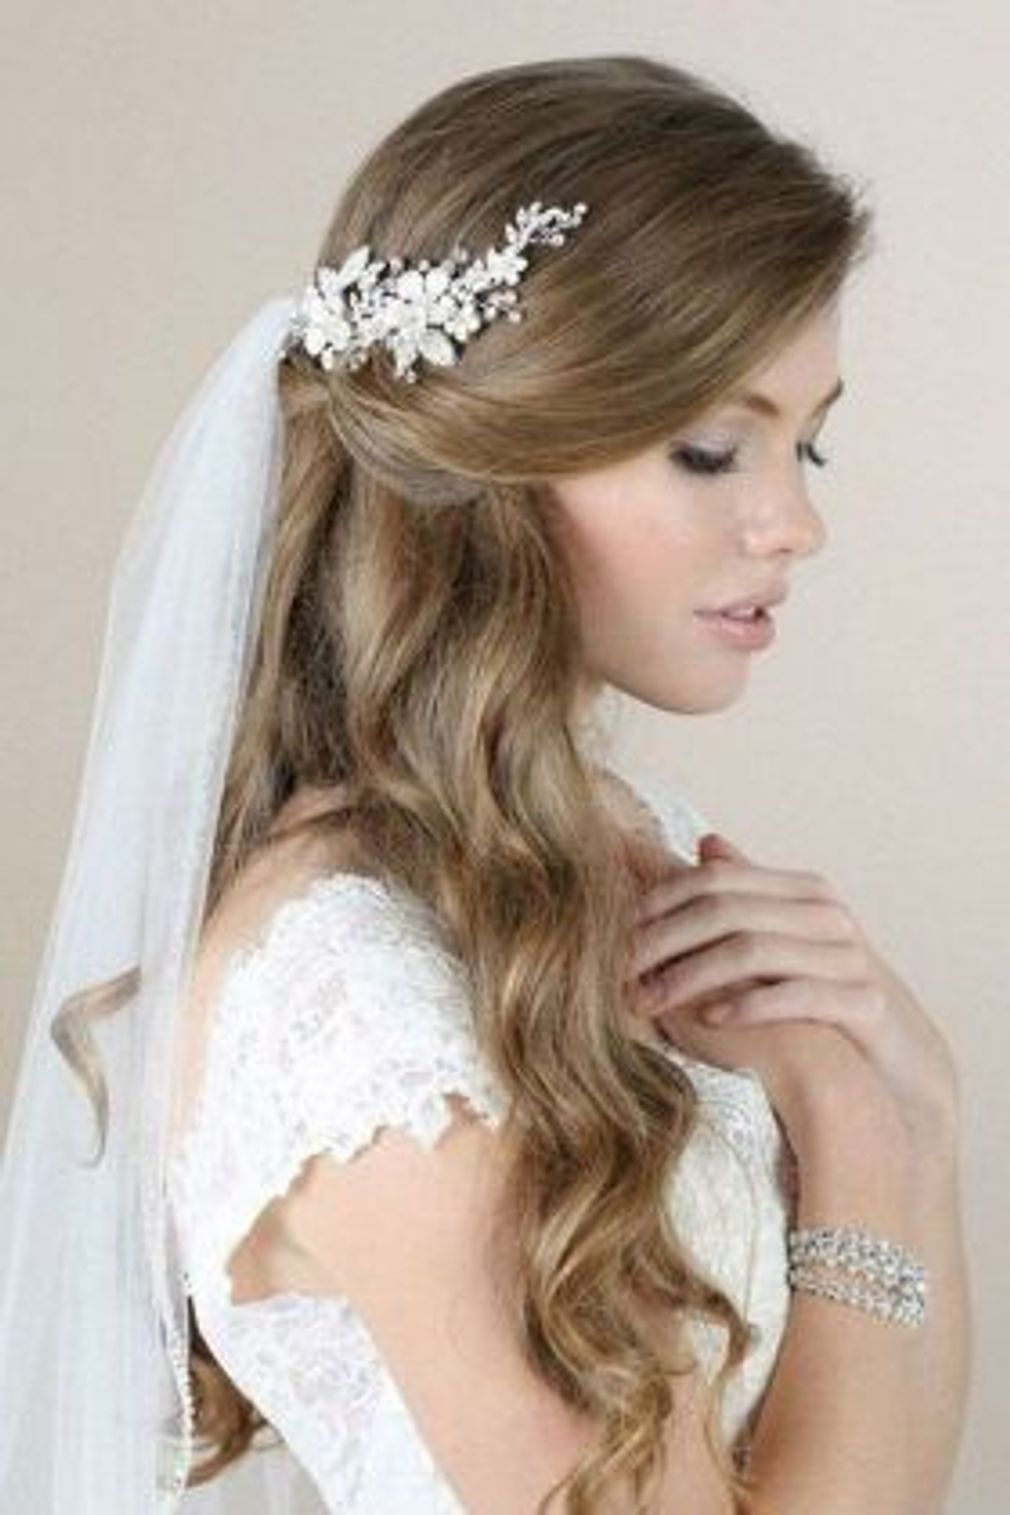 37+ Coiffure mariage voile des idees